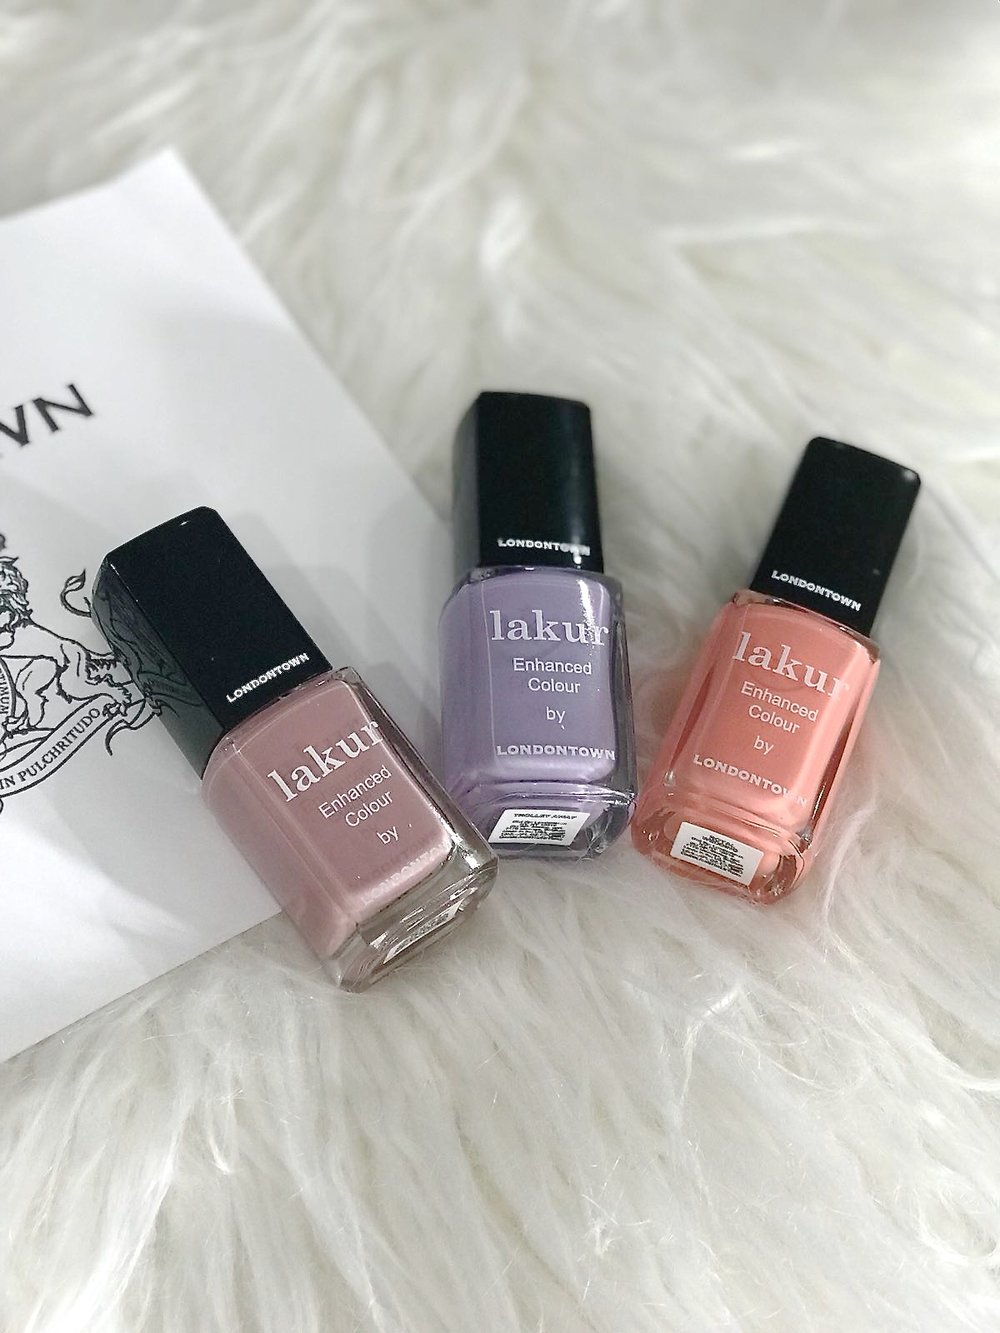 londontown-lakur-nail-polishes-review.JPG